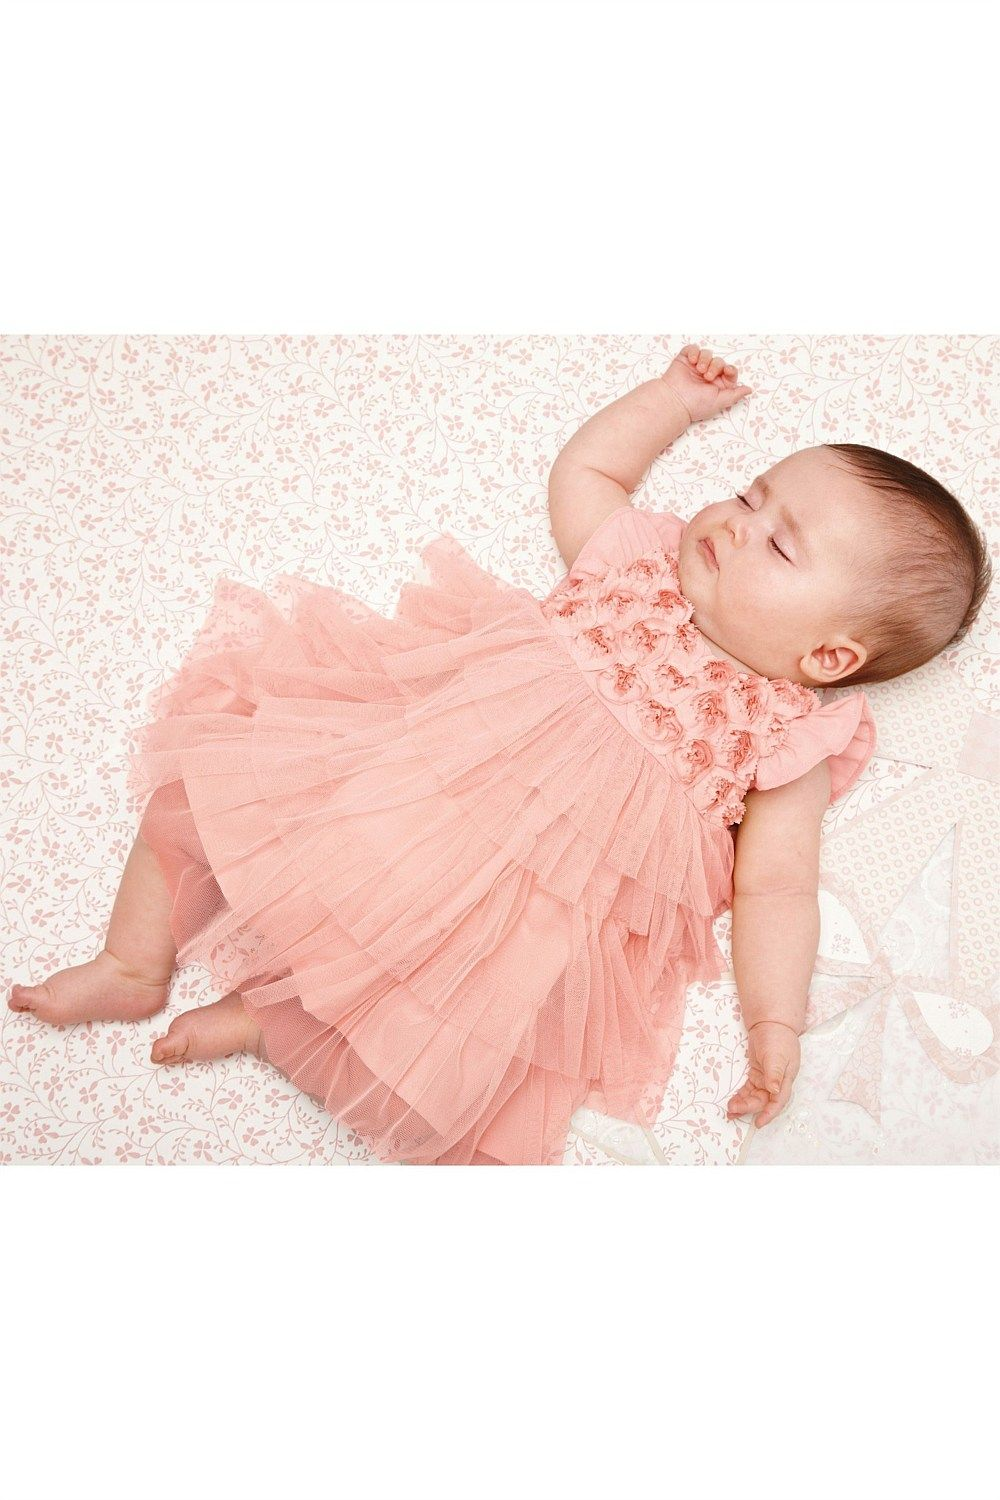 Newborn Dresses - Baby Dresses and Infantwear - Next Layer Dress